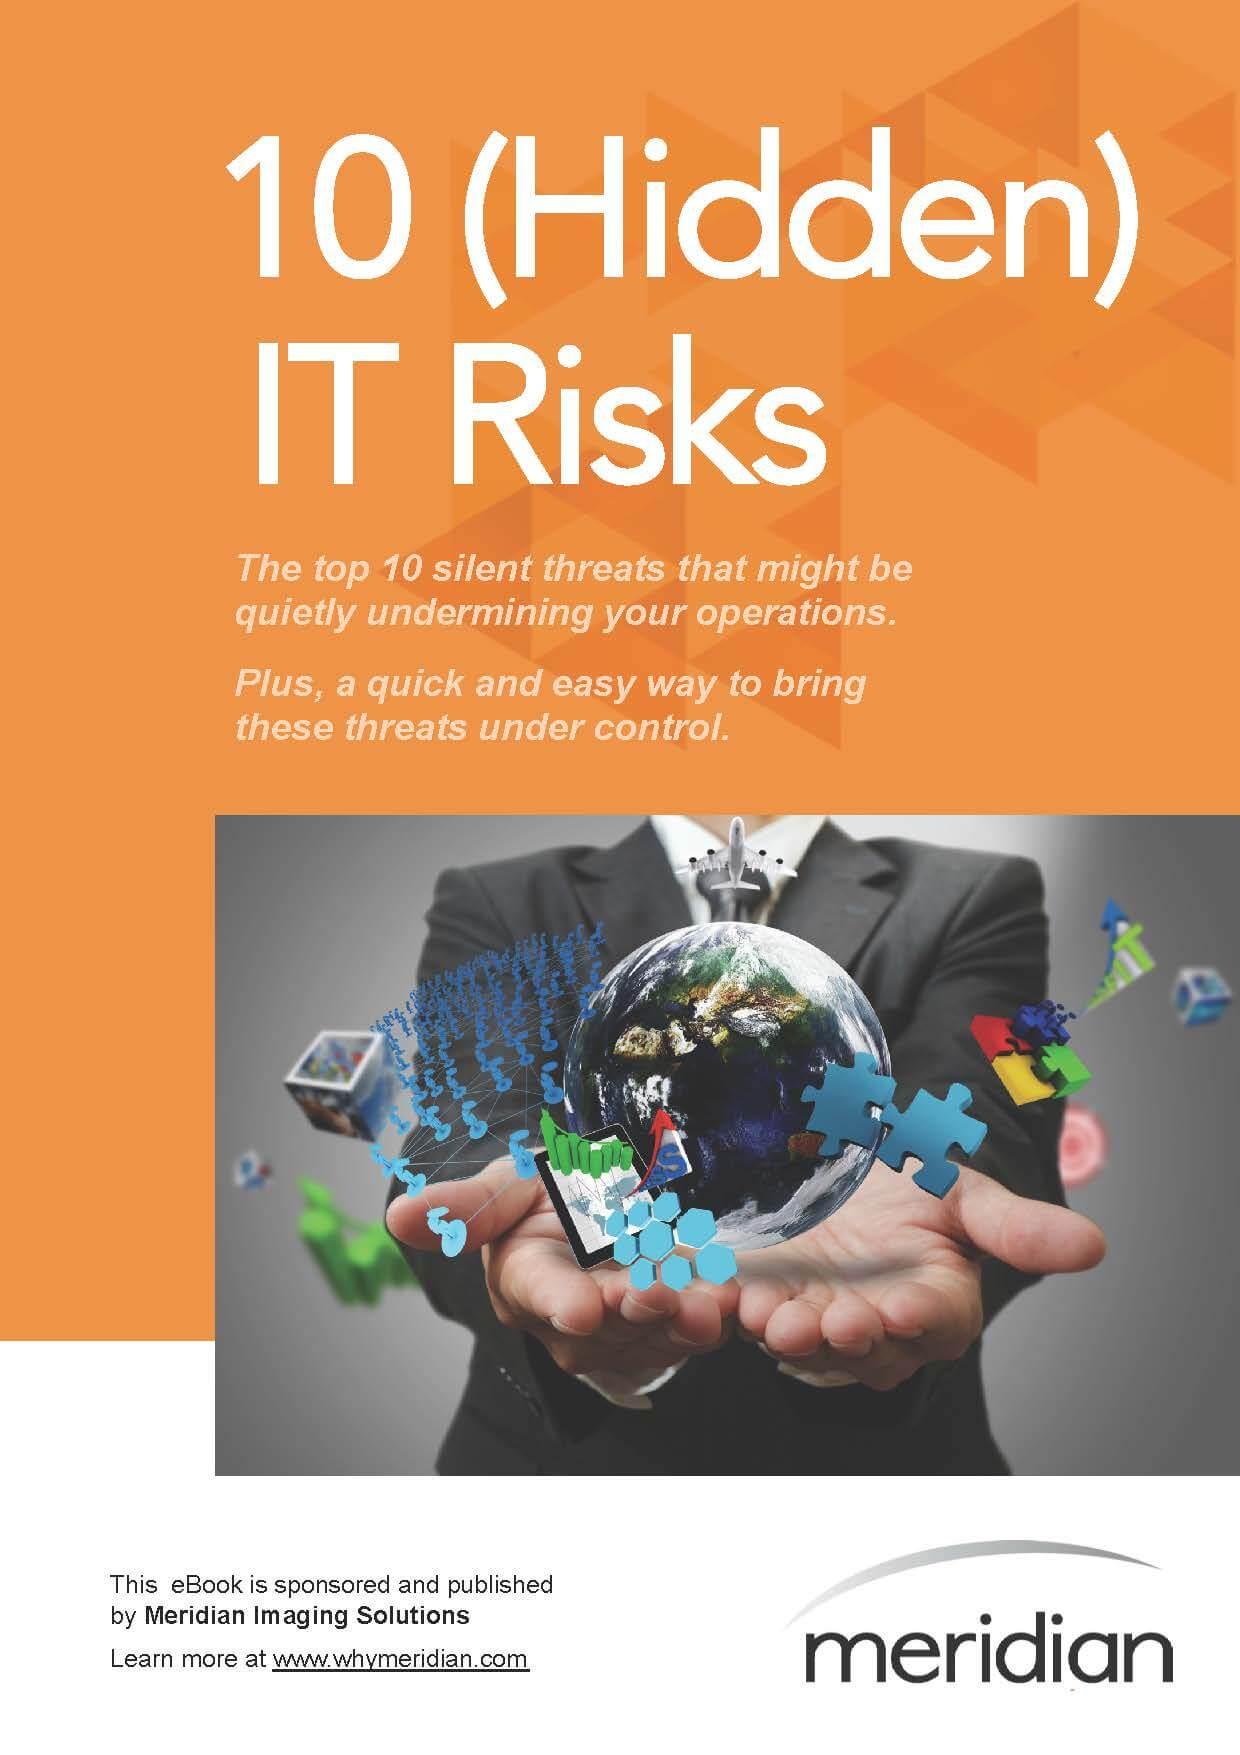 10-Hidden-IT-Risks-eBook-Cover